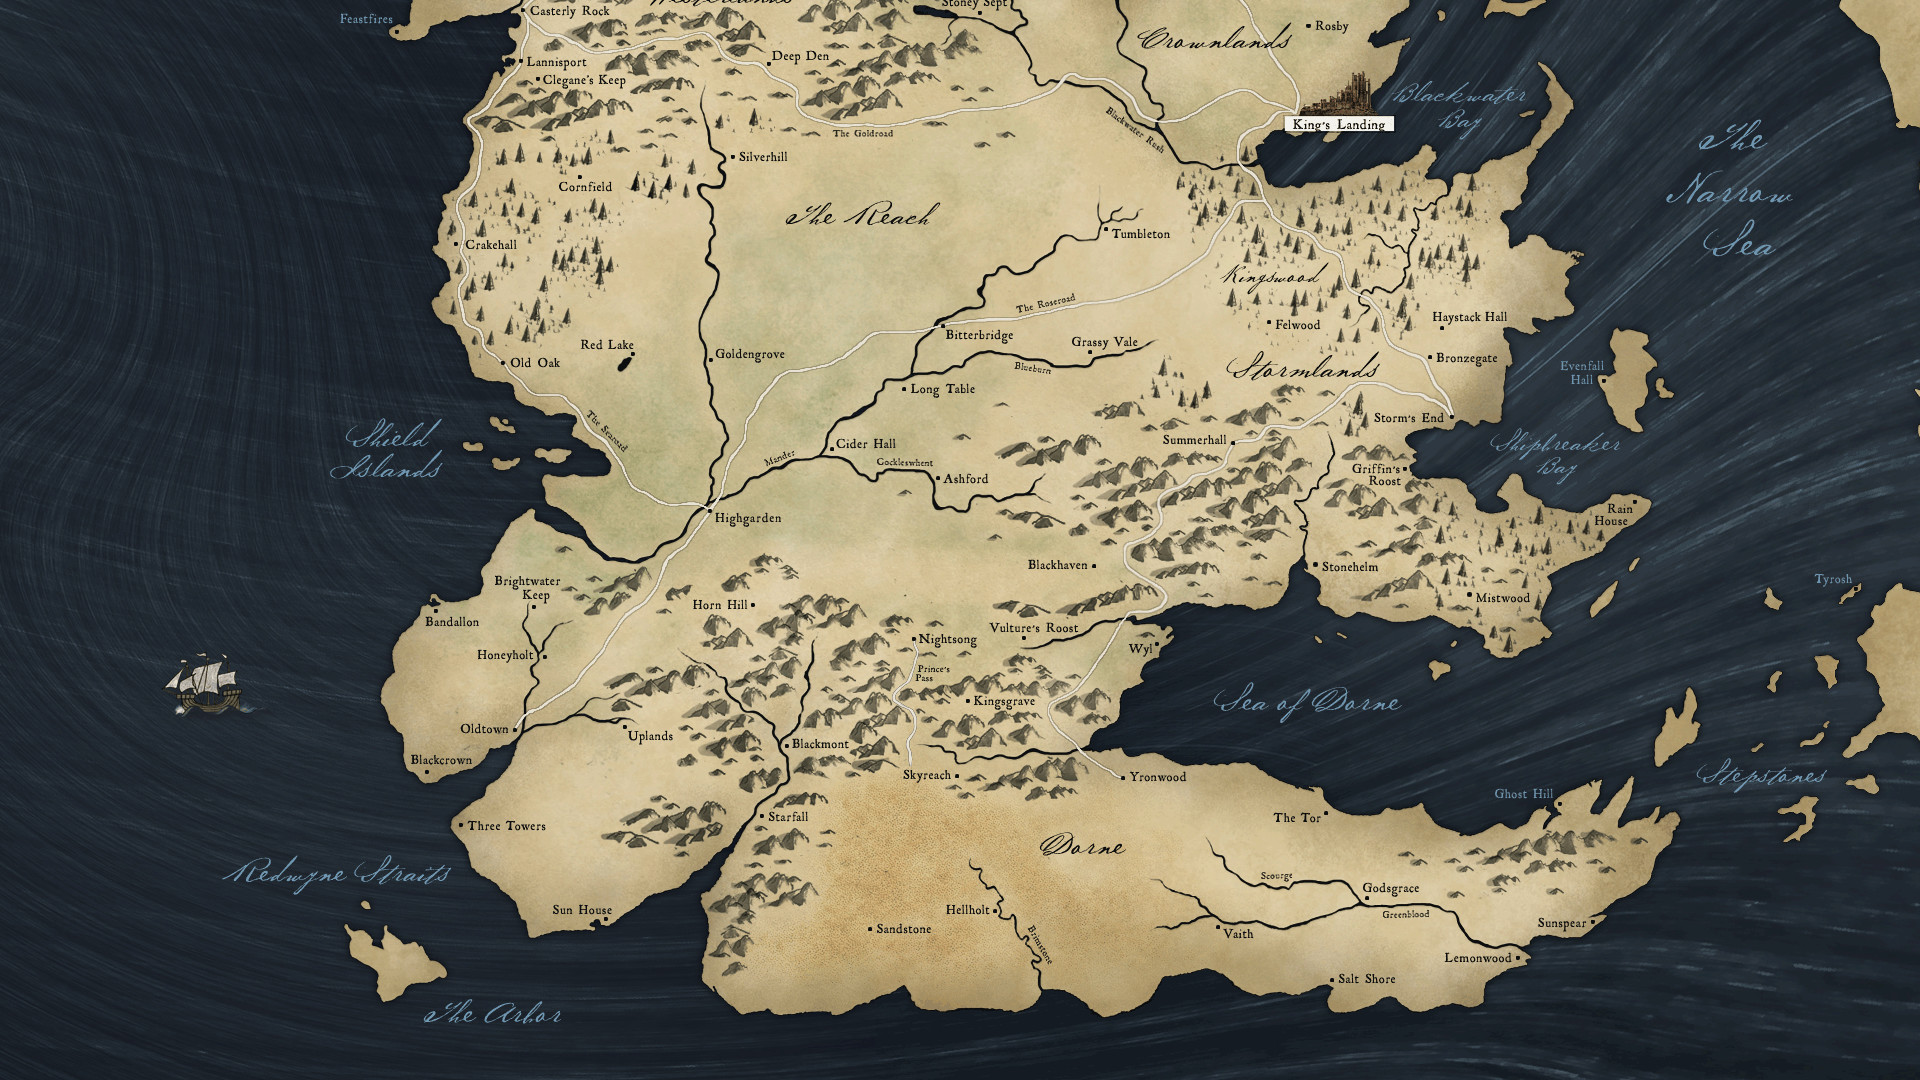 Game of Thrones (NO BOOK SPOILERS) – Season 1 – Sundays on HBO .